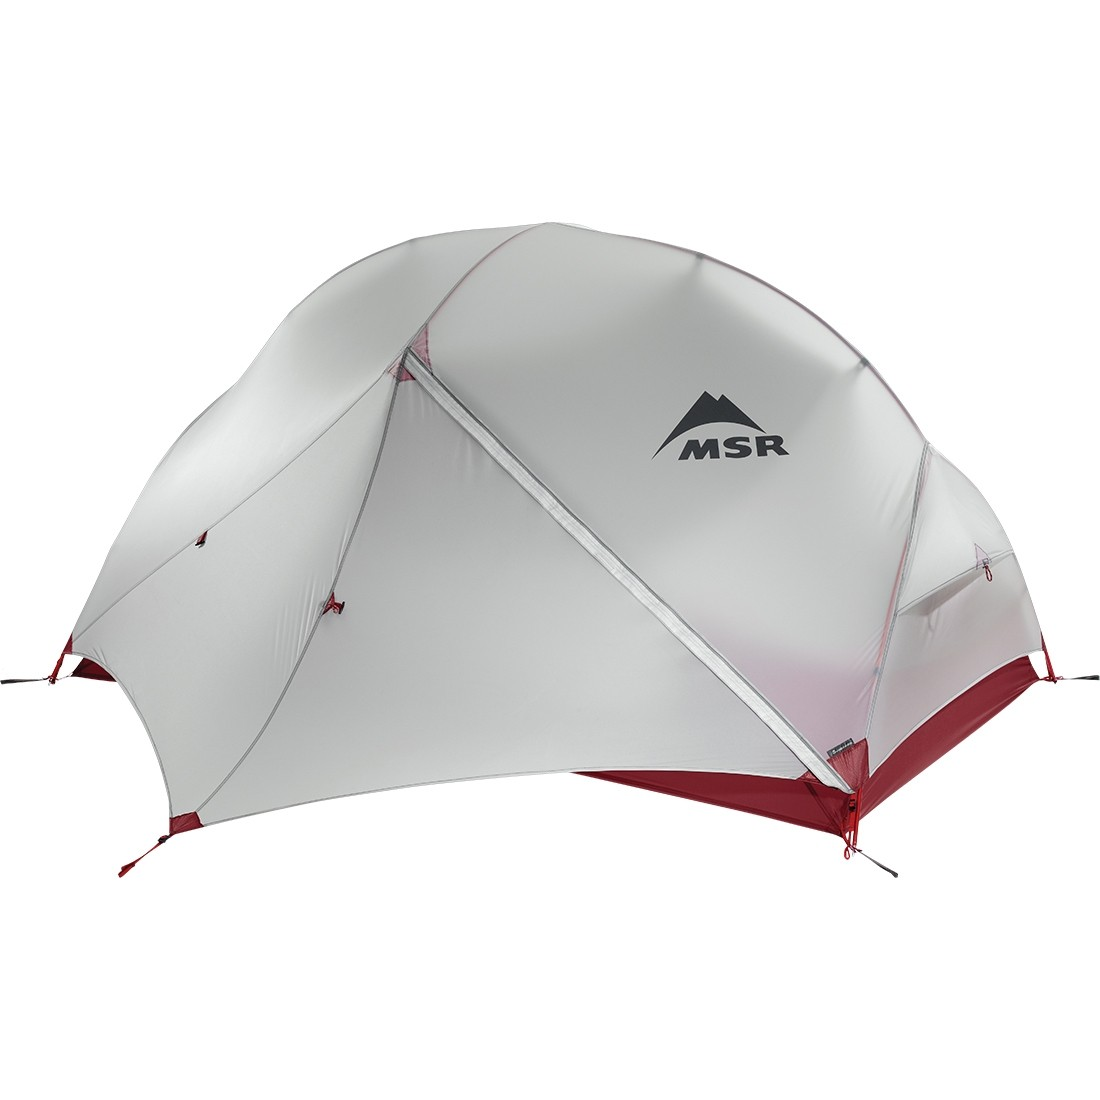 MSR - Hubba Hubba NX Tent - Grey - Fly closed